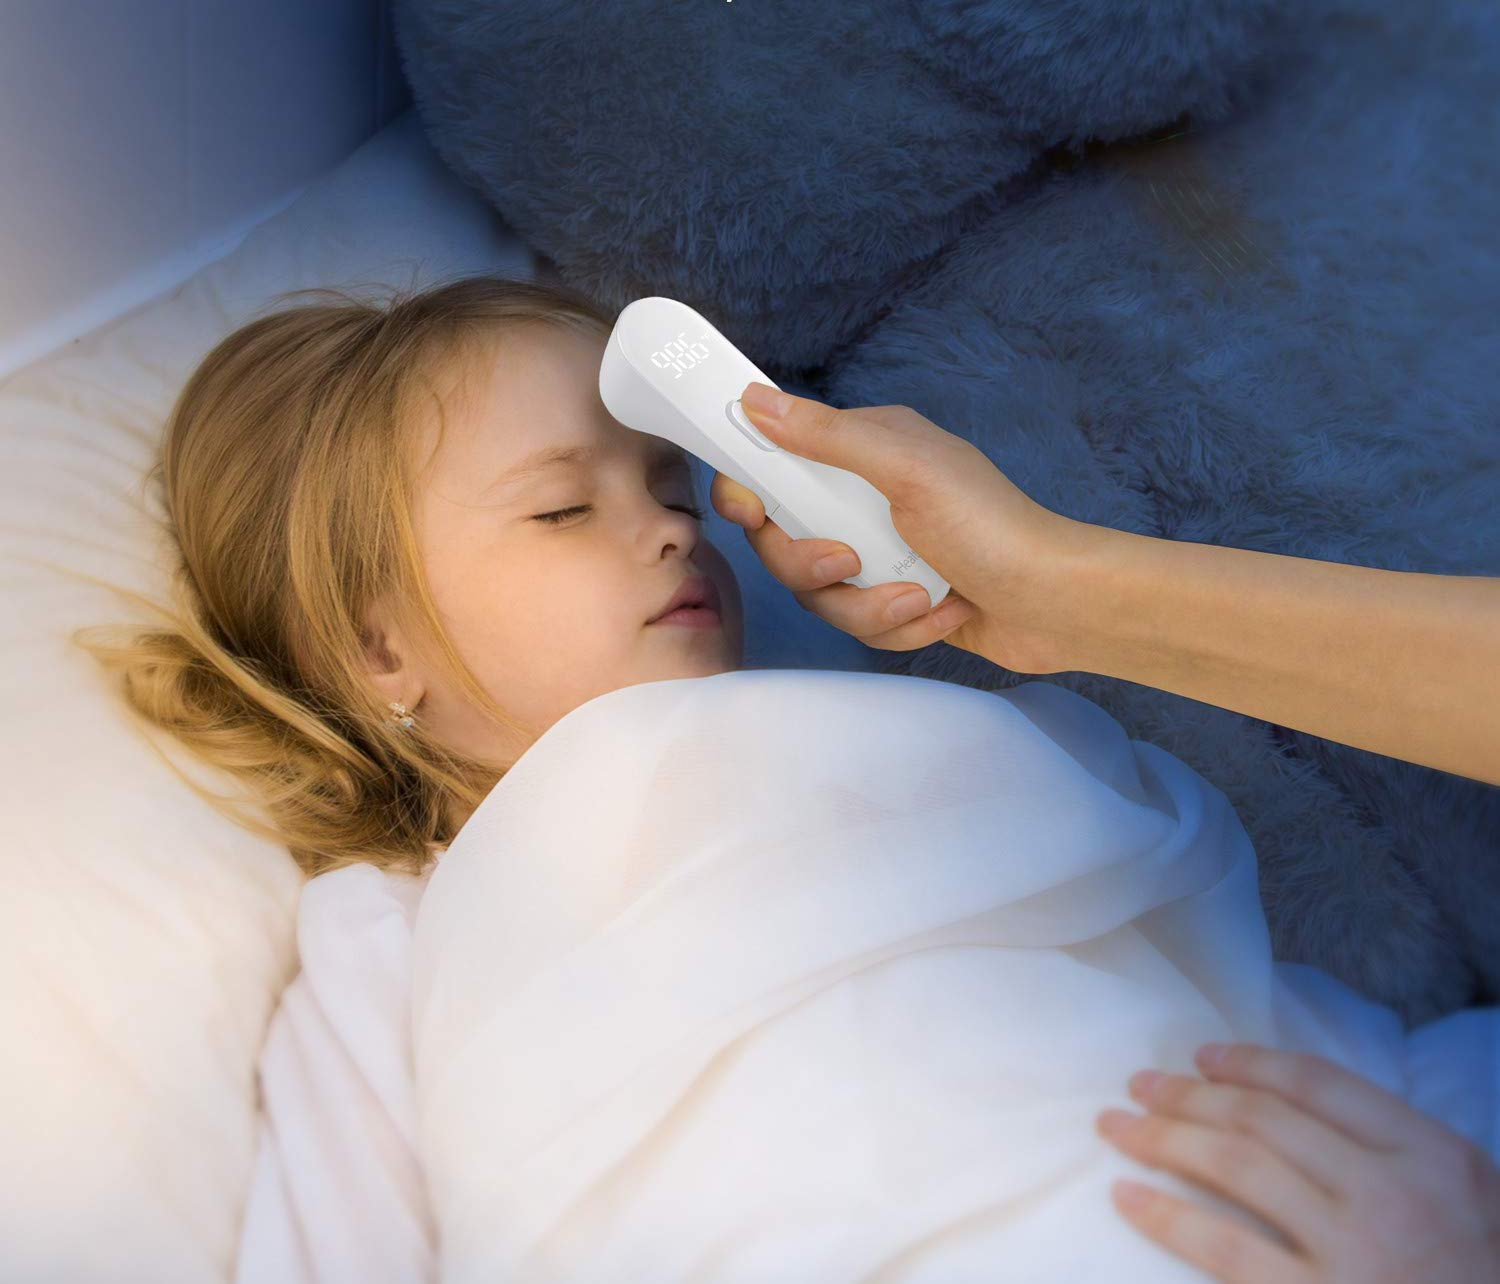 iHealth Infrared No-Touch Forehead Thermometer